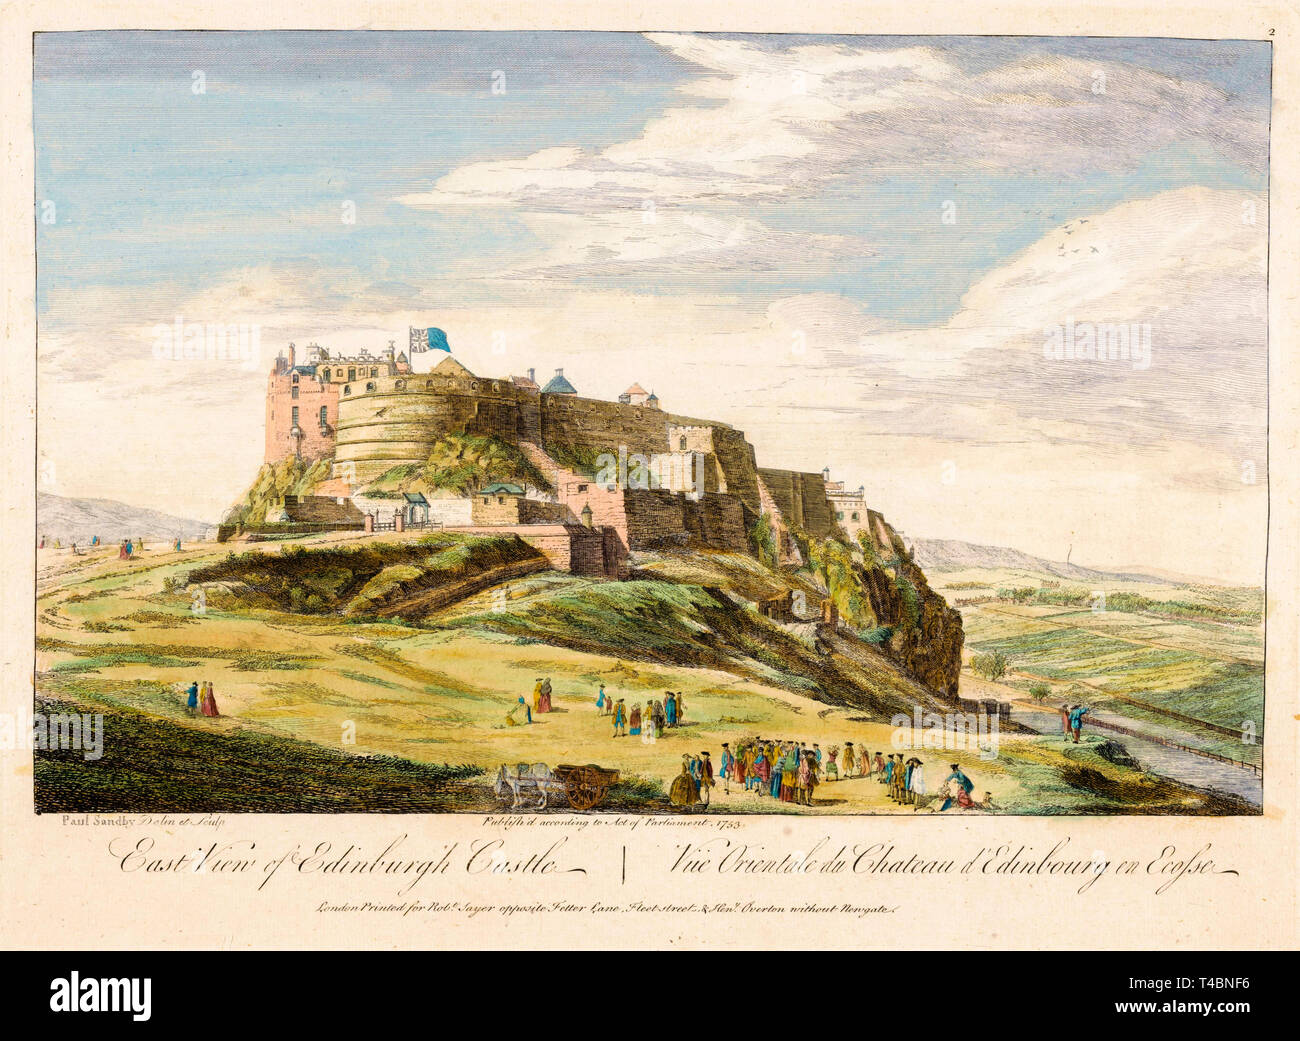 East view of Edinburgh Castle, watercolour painting by Paul Sandby, 1753 Stock Photo